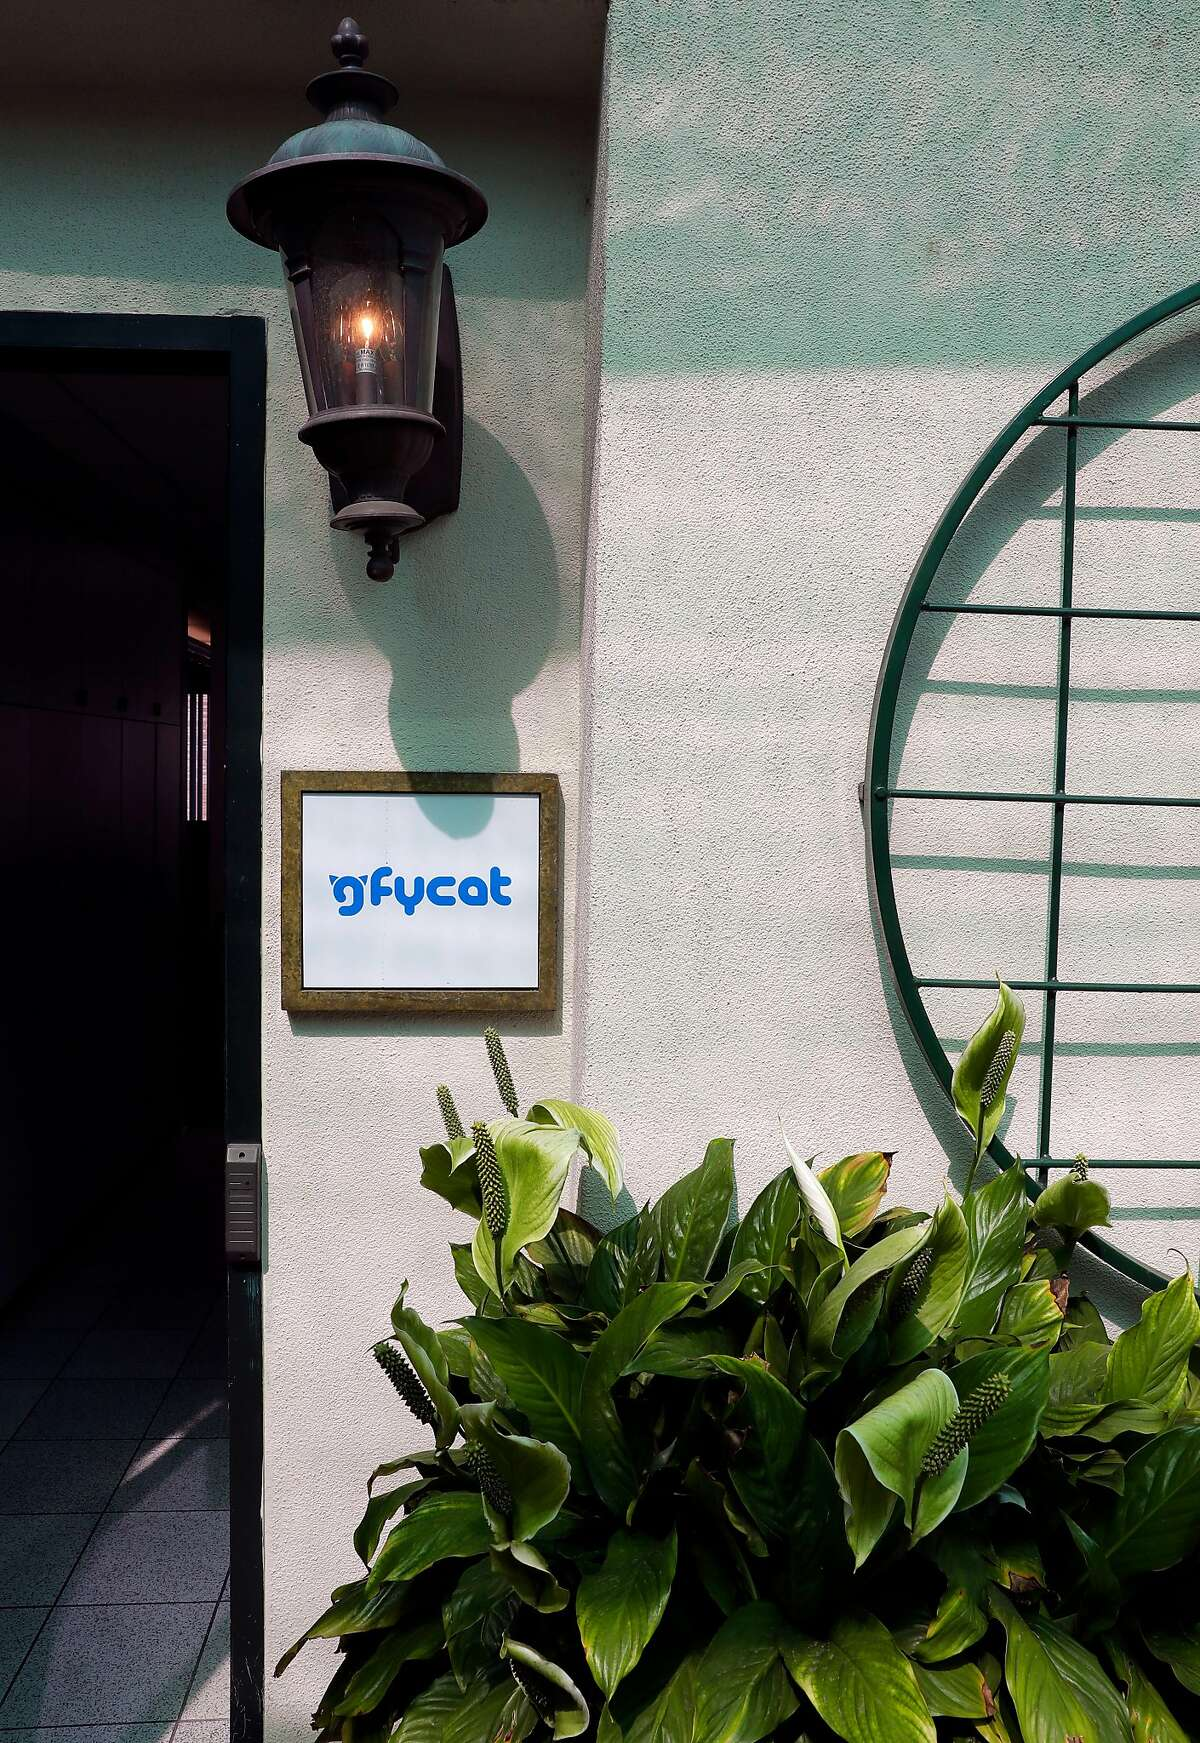 The offices of Gfycat, on Thursday September 14, 2017, in Palo Alto, Ca. Gfycat was founded in order to upgrade the GIF viewing experience to the 21st century.